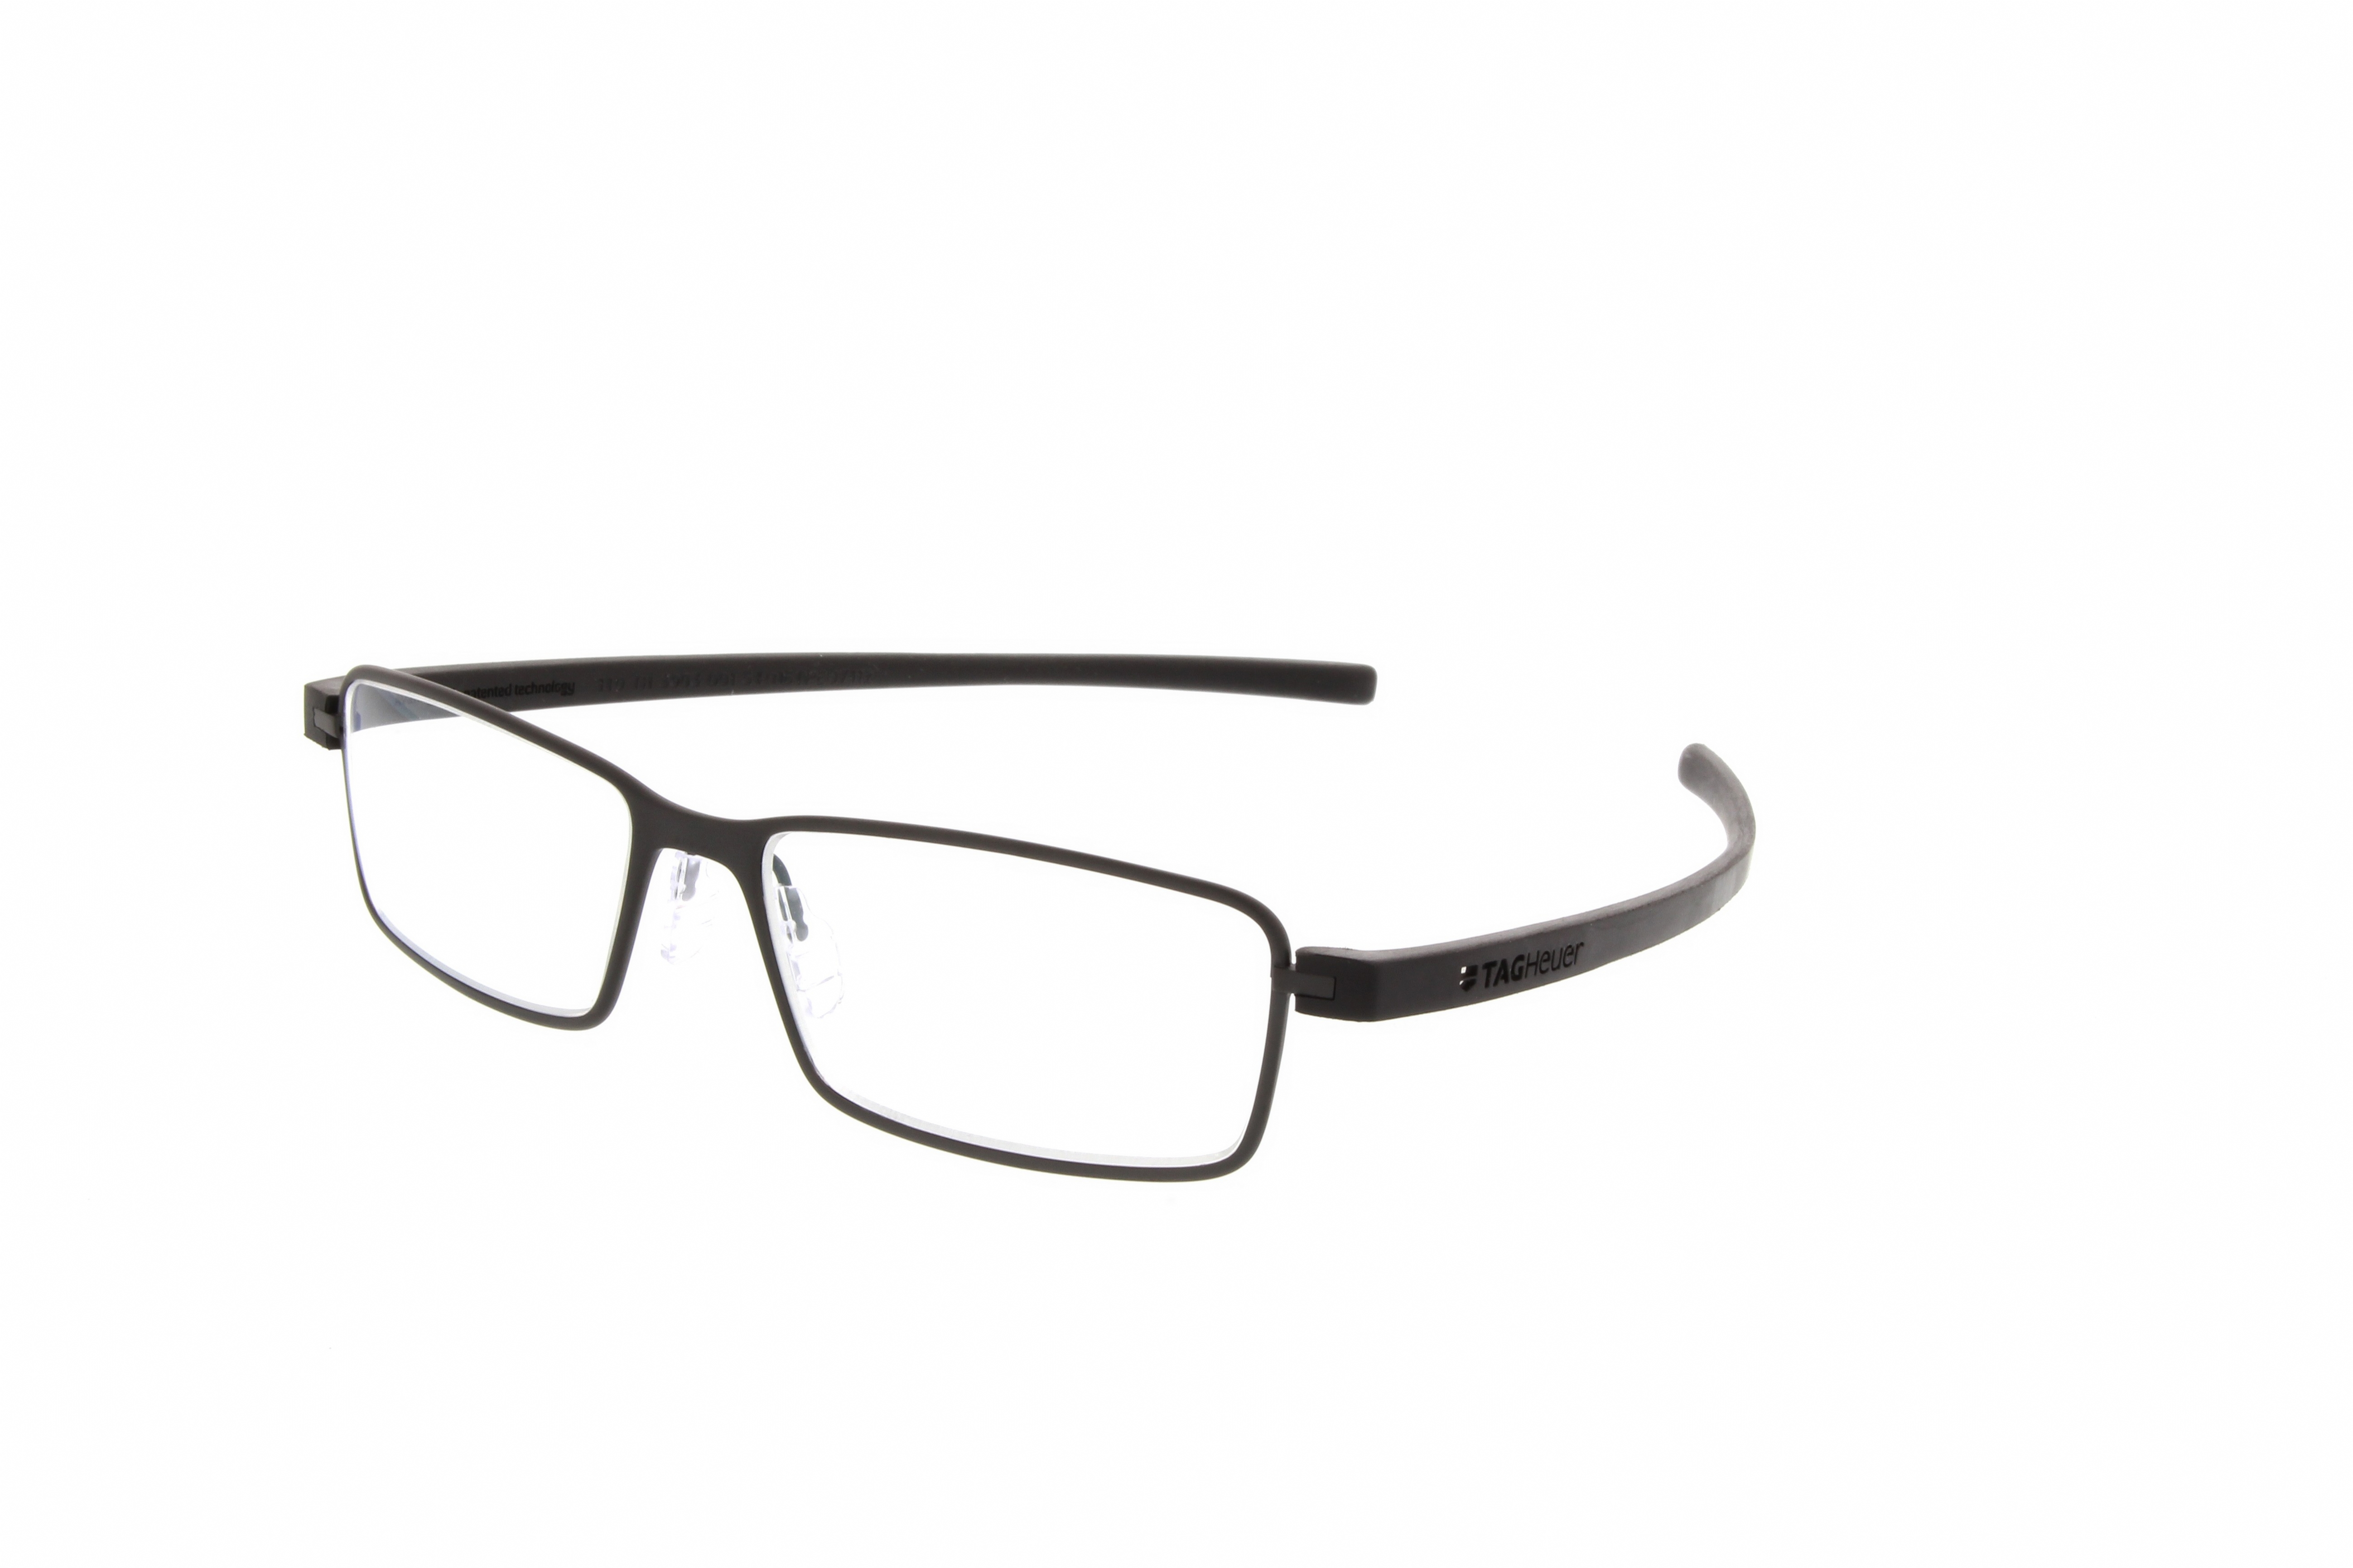 e0661a75fbf Buy Tag Heuer Eyeglasses directly from eyeglassesdepot.com